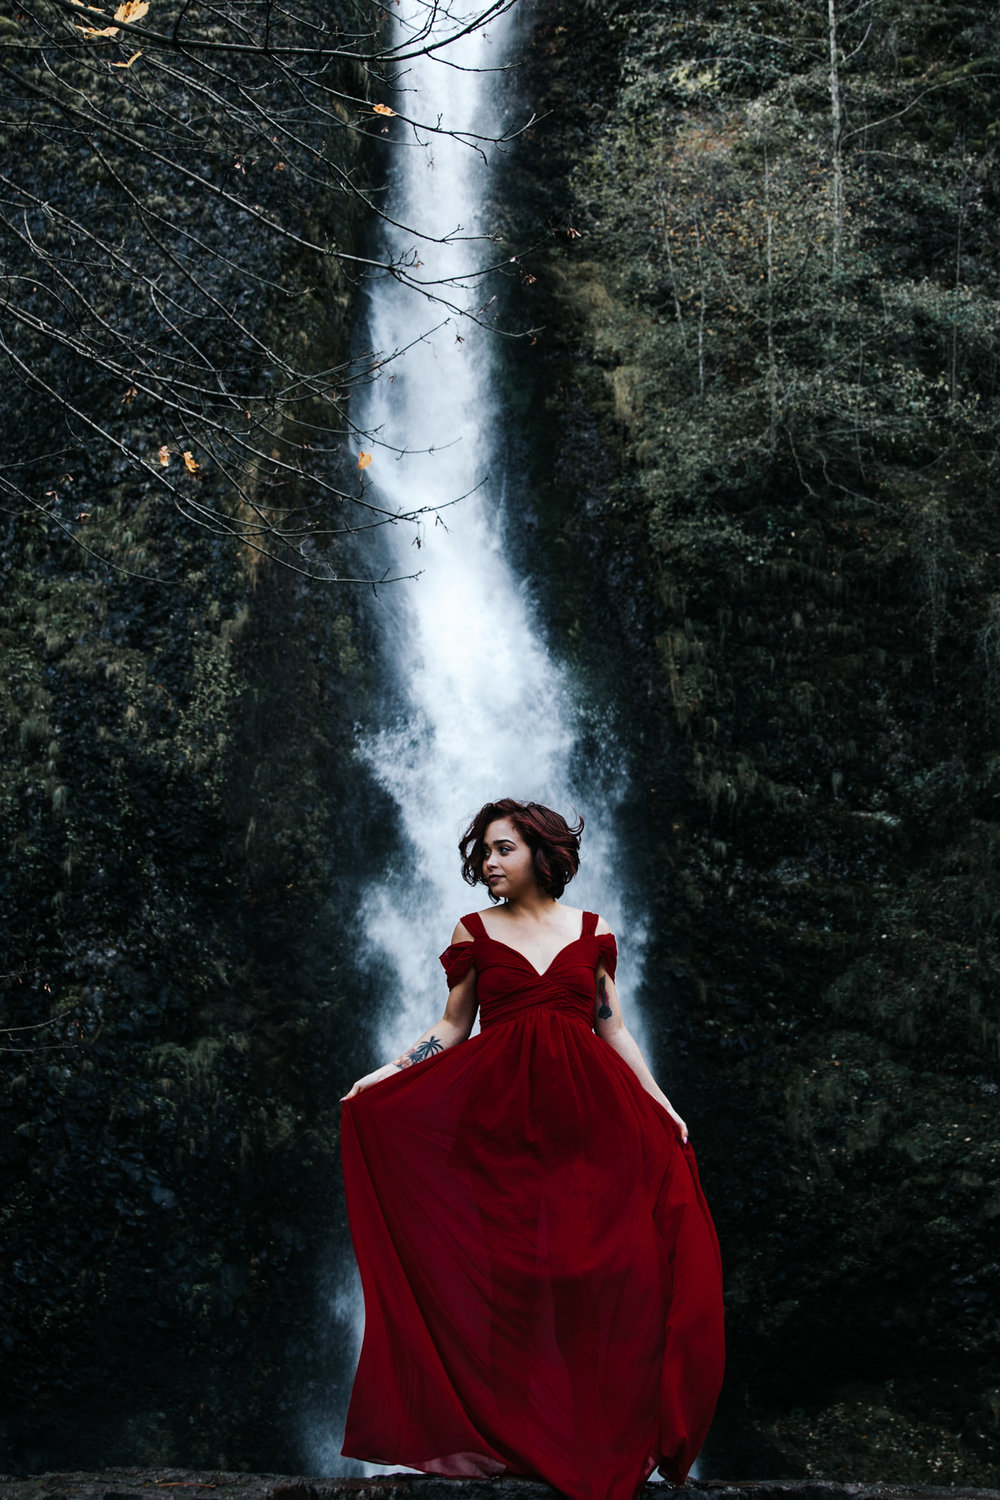 Babe posing in front of waterfall, Adventurous Outdoor + Waterfall Couples Session | Croative Photography